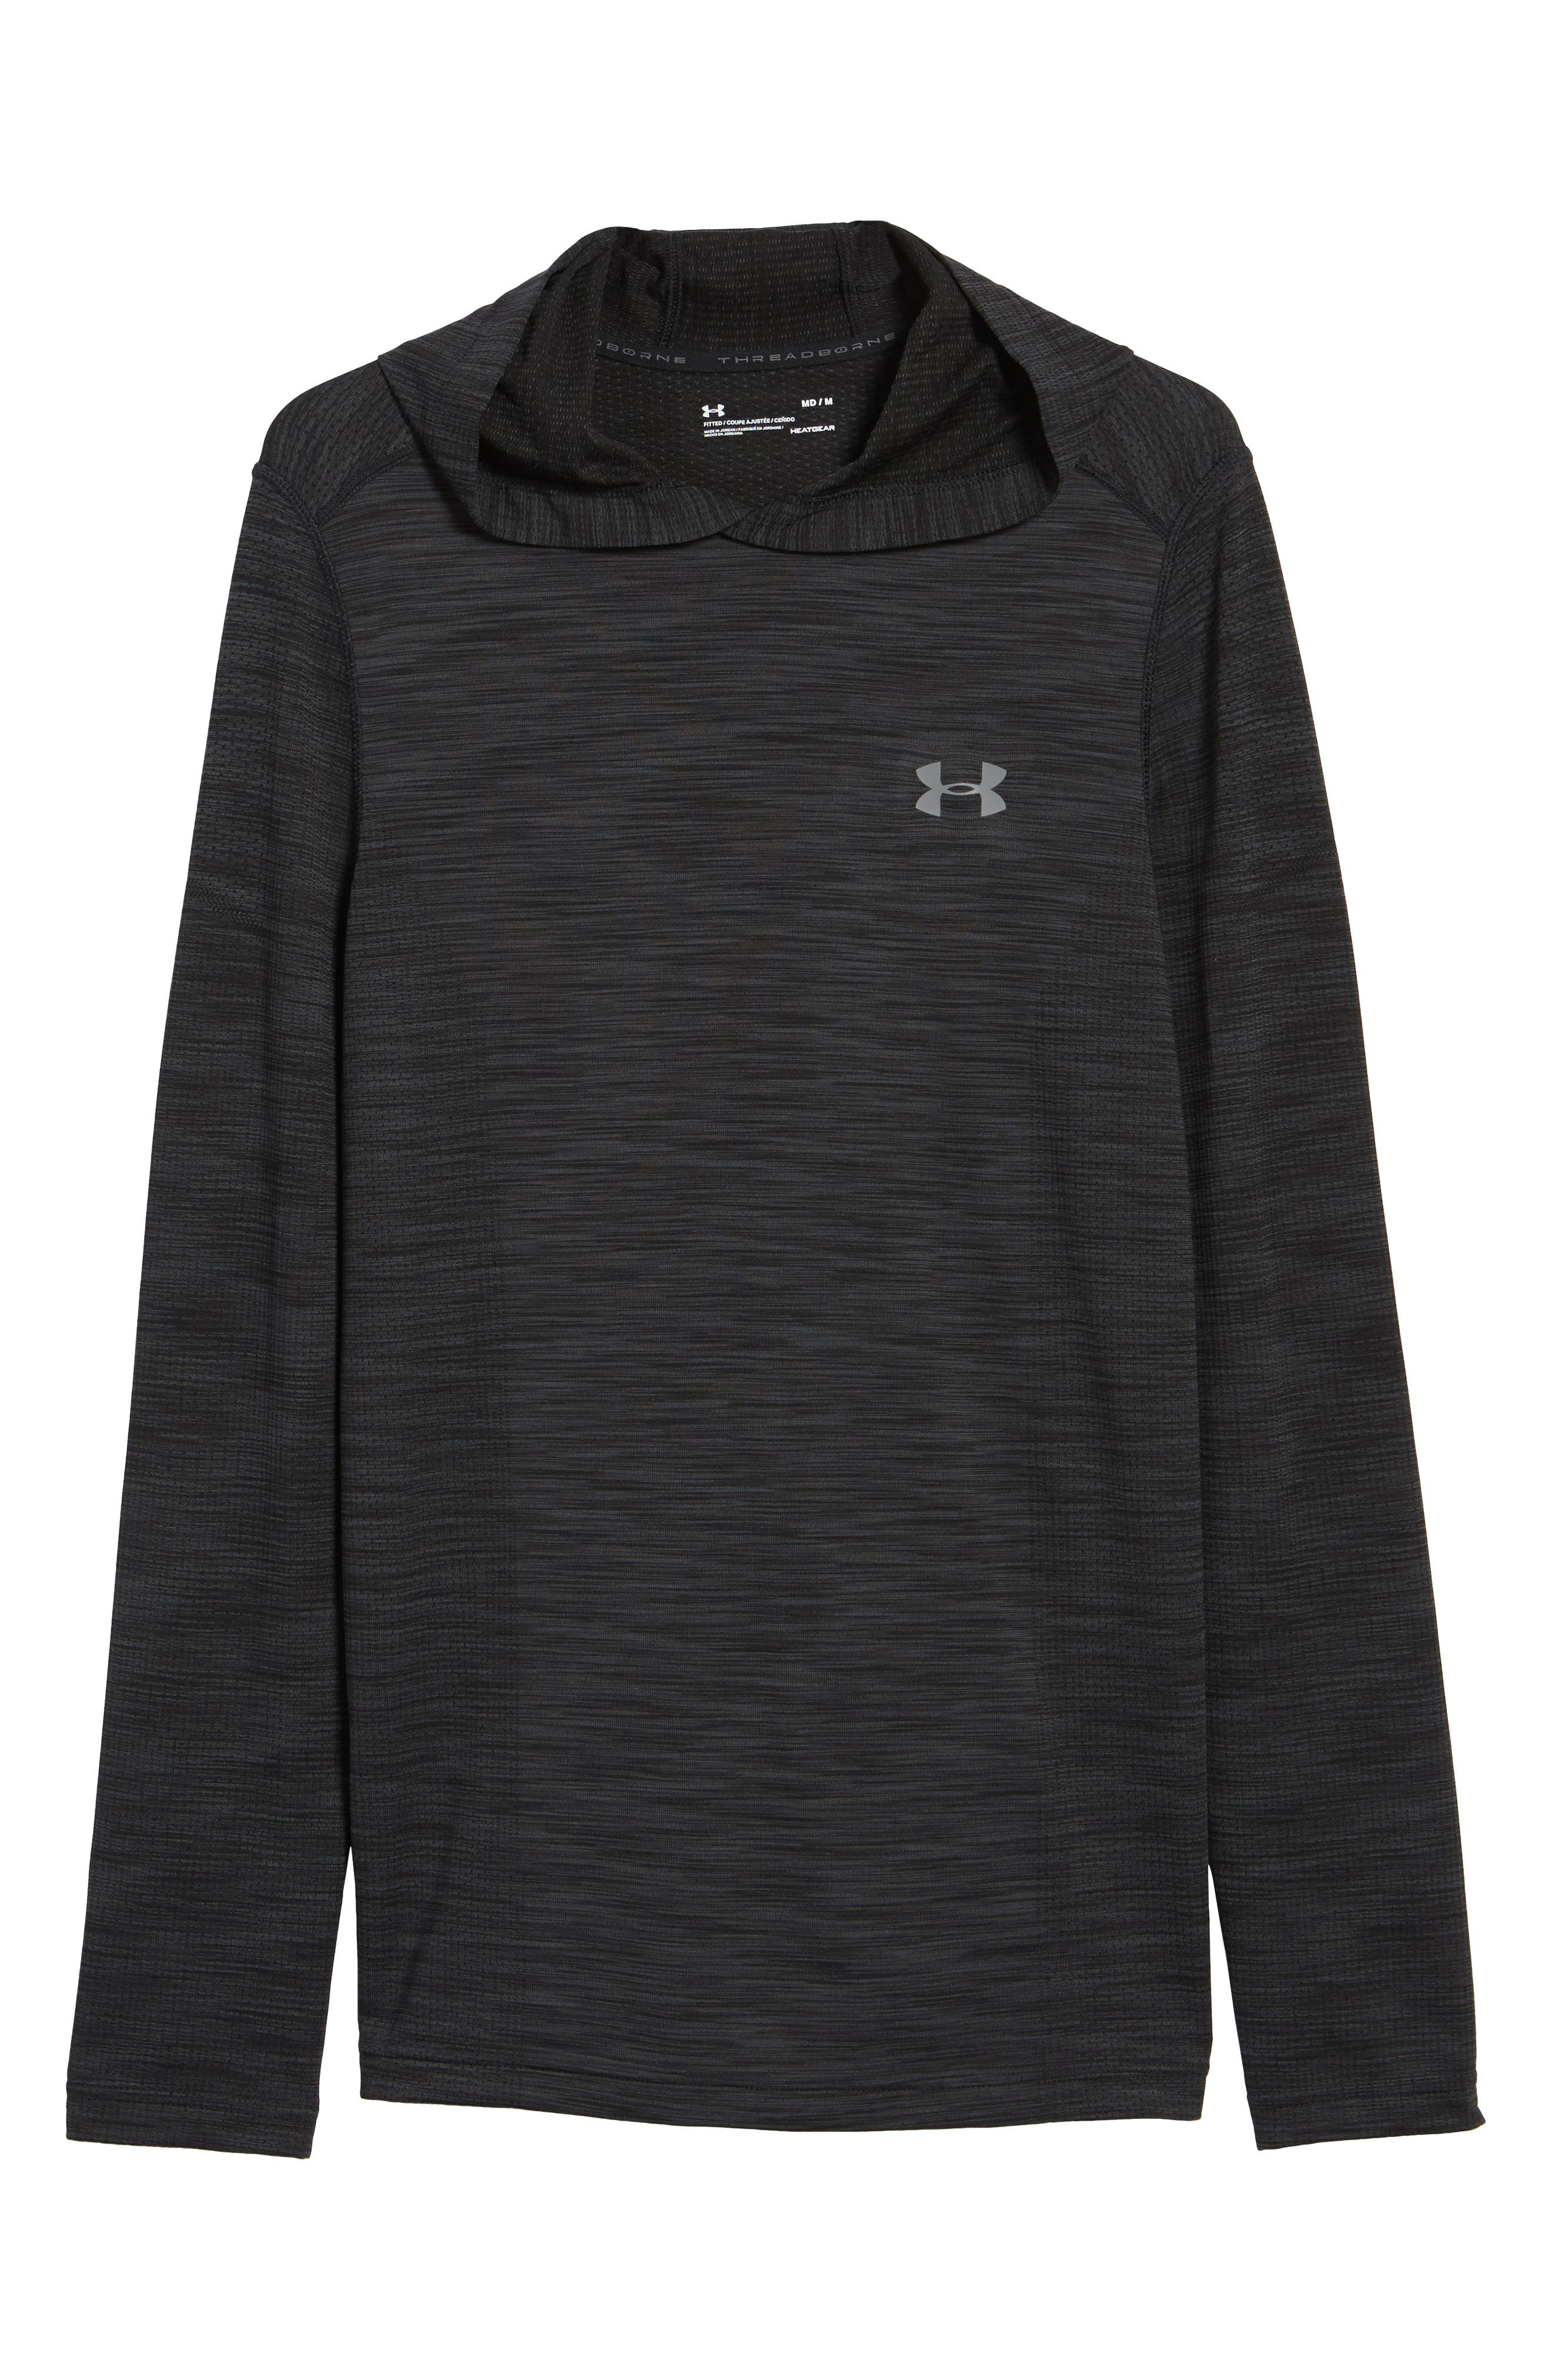 Threadbone Fitted Seamless Hoodie,                             Alternate thumbnail 6, color,                             001